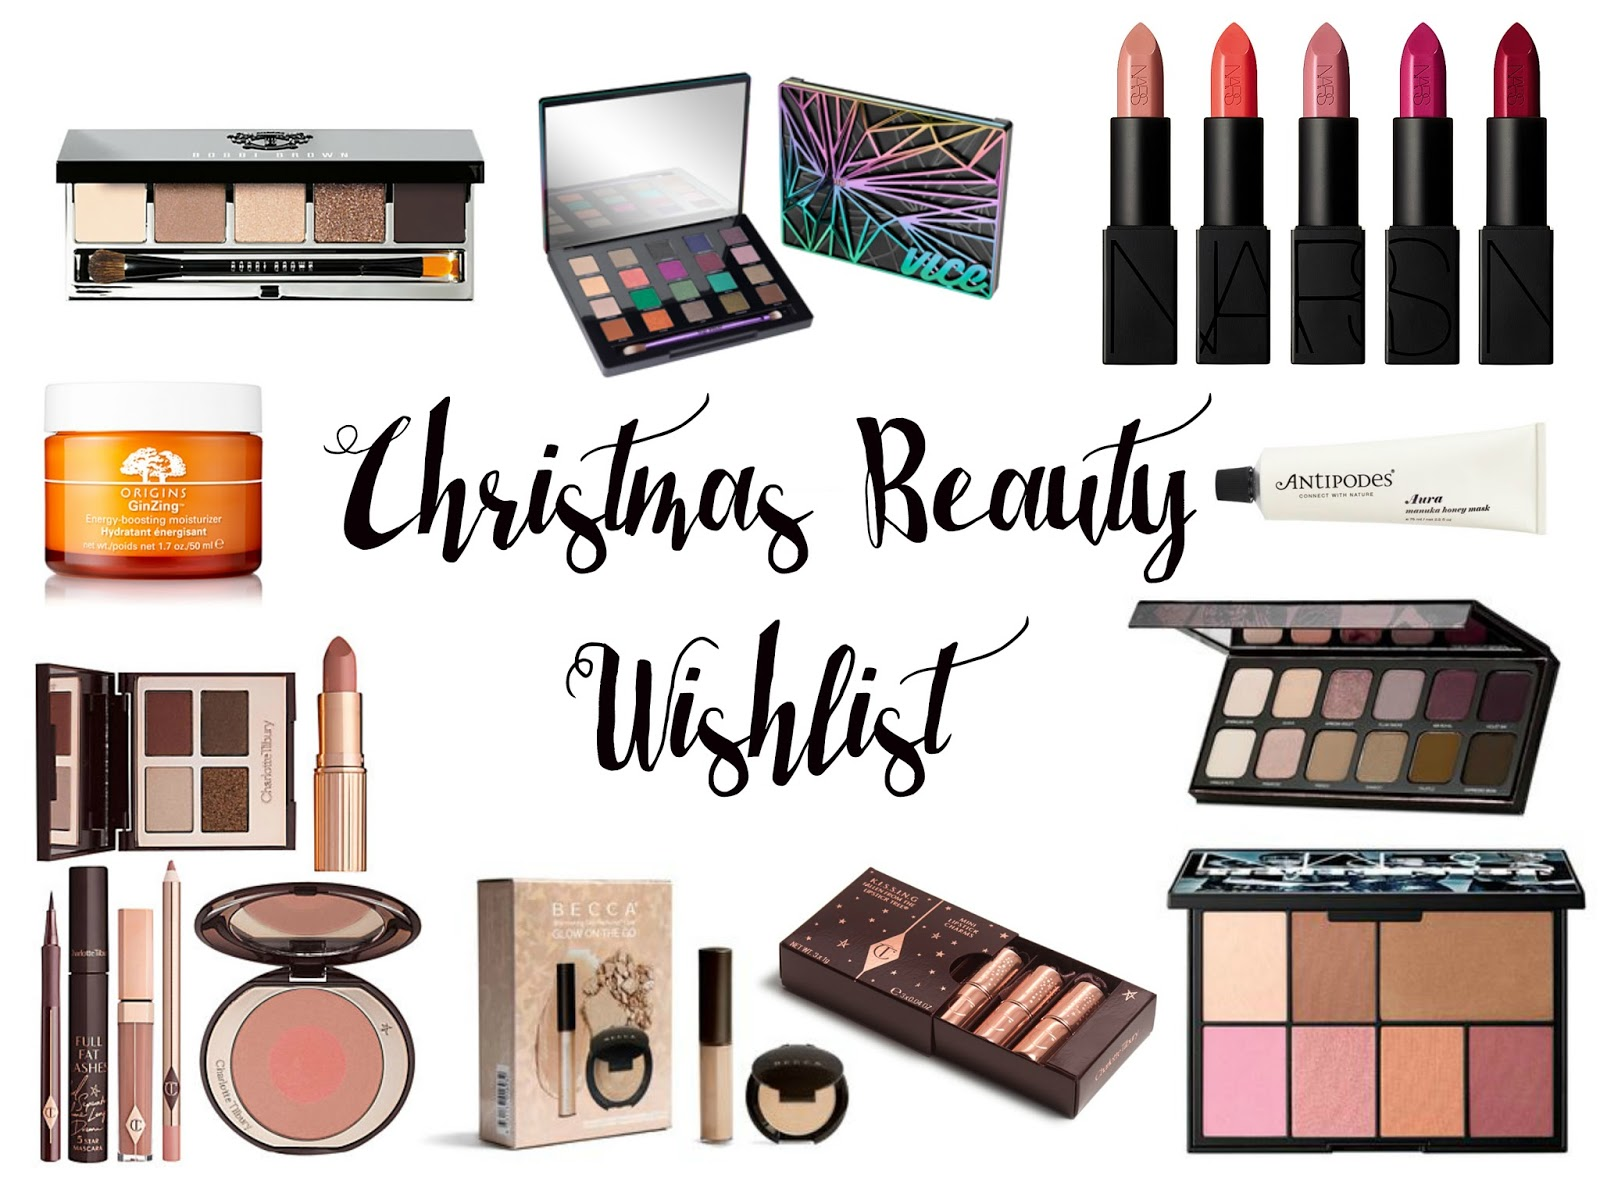 Blogmas Christmas Beauty Wishlist 2015